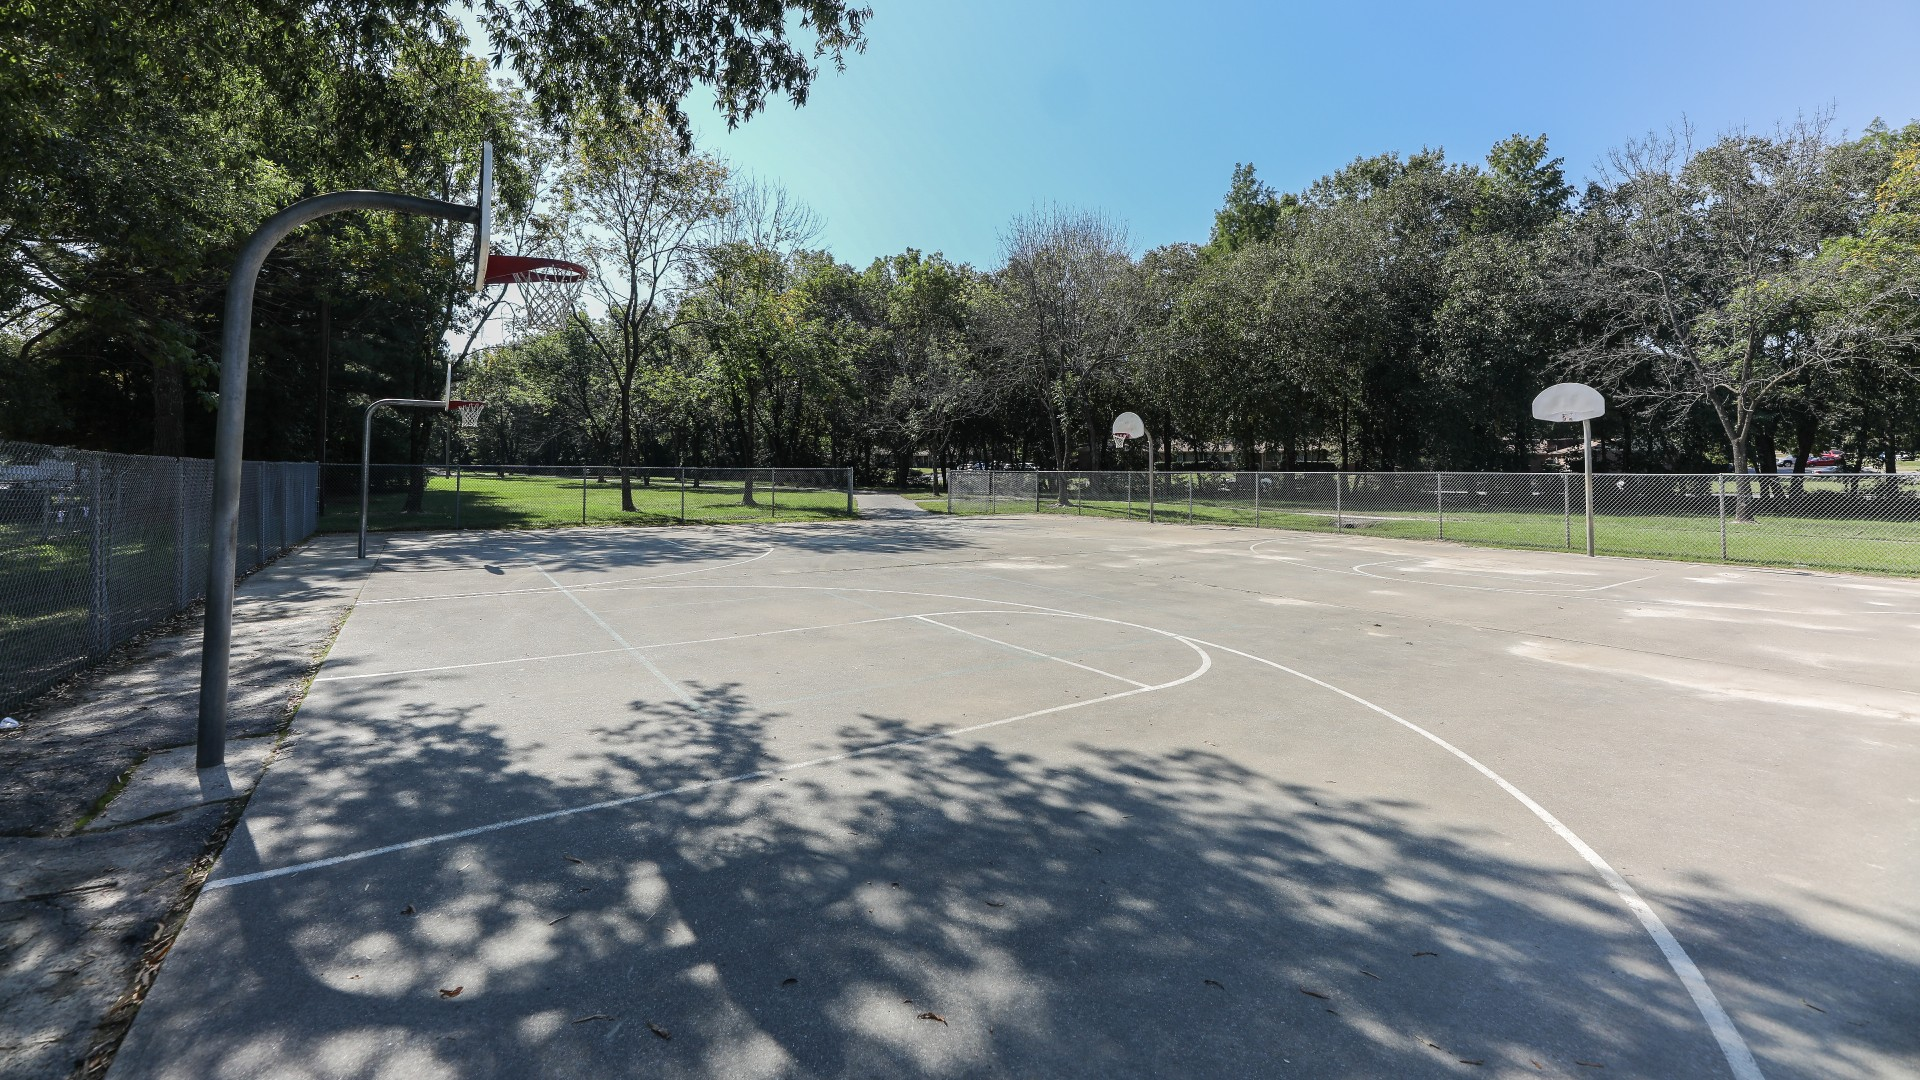 A concrete outdoor basketball court with four hoops total